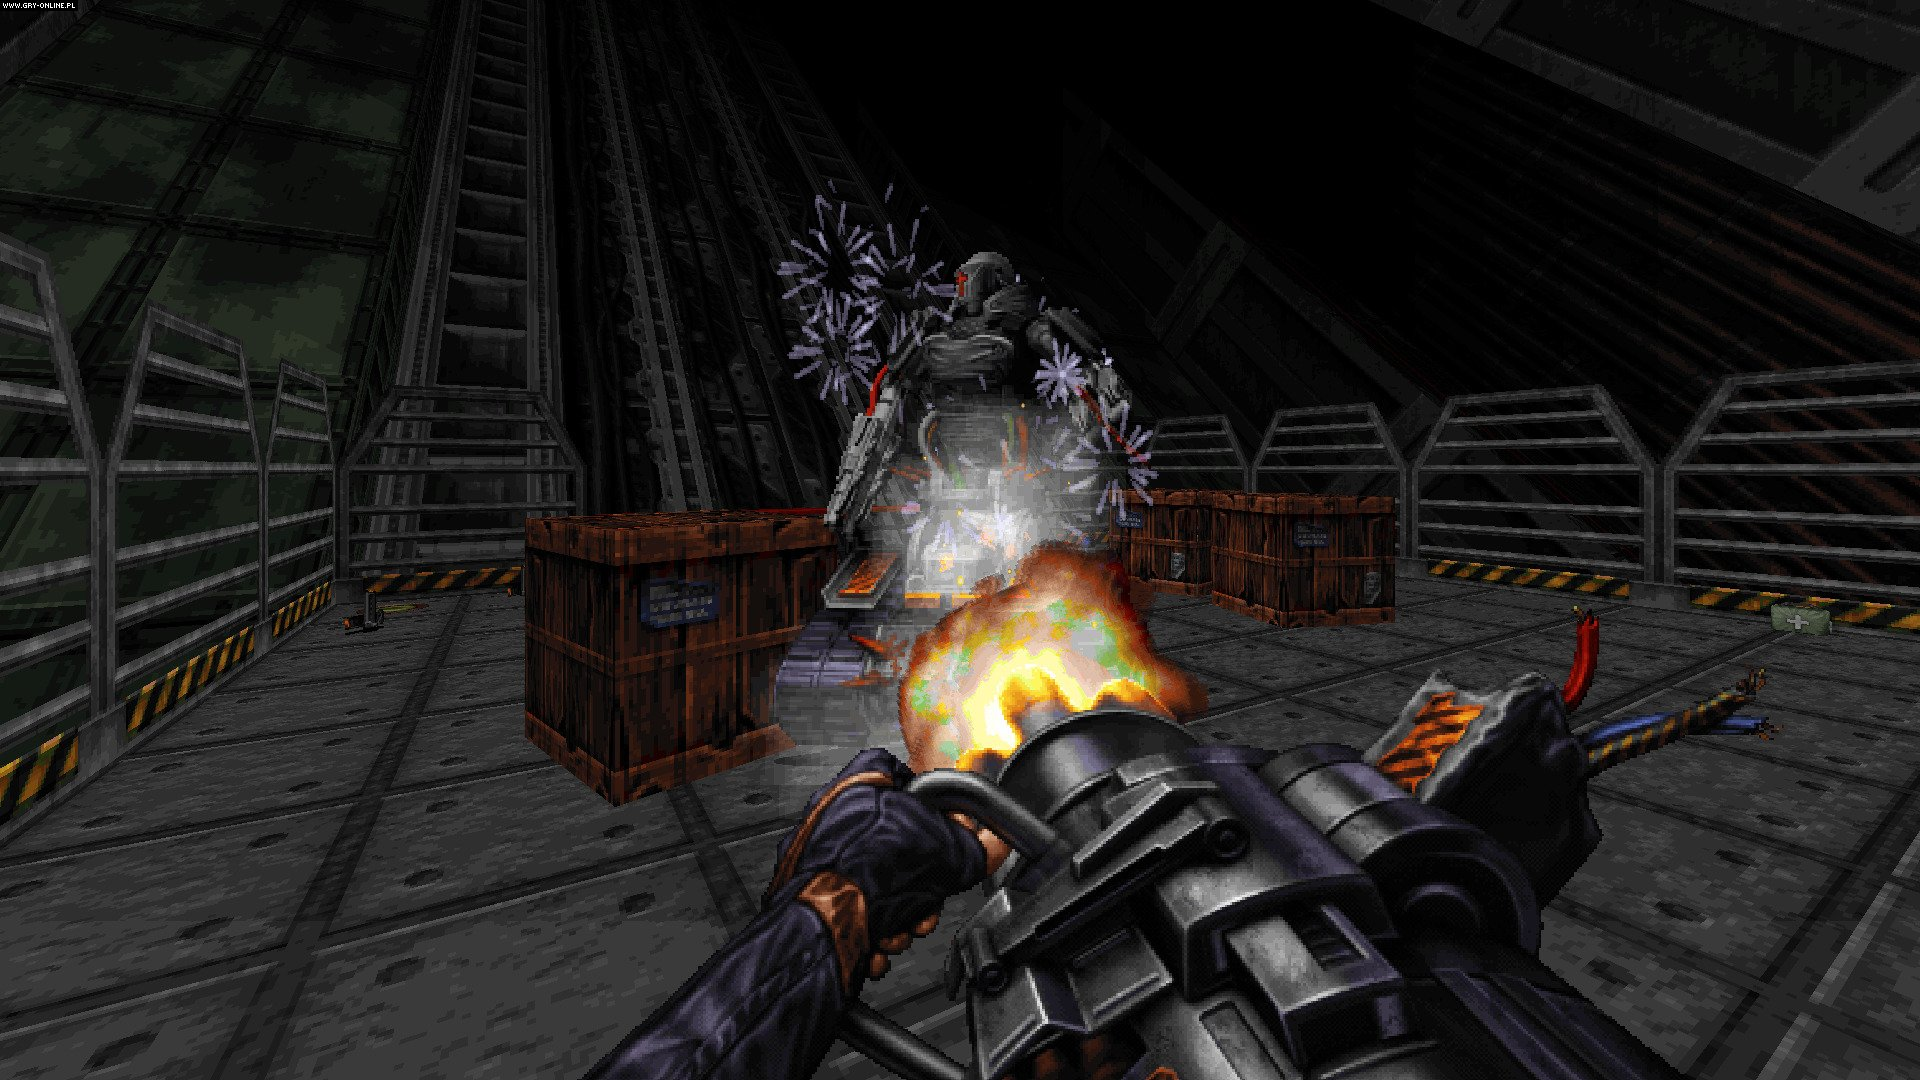 Ion Fury PC Games Image 3/33, Voidpoint, 3D Realms